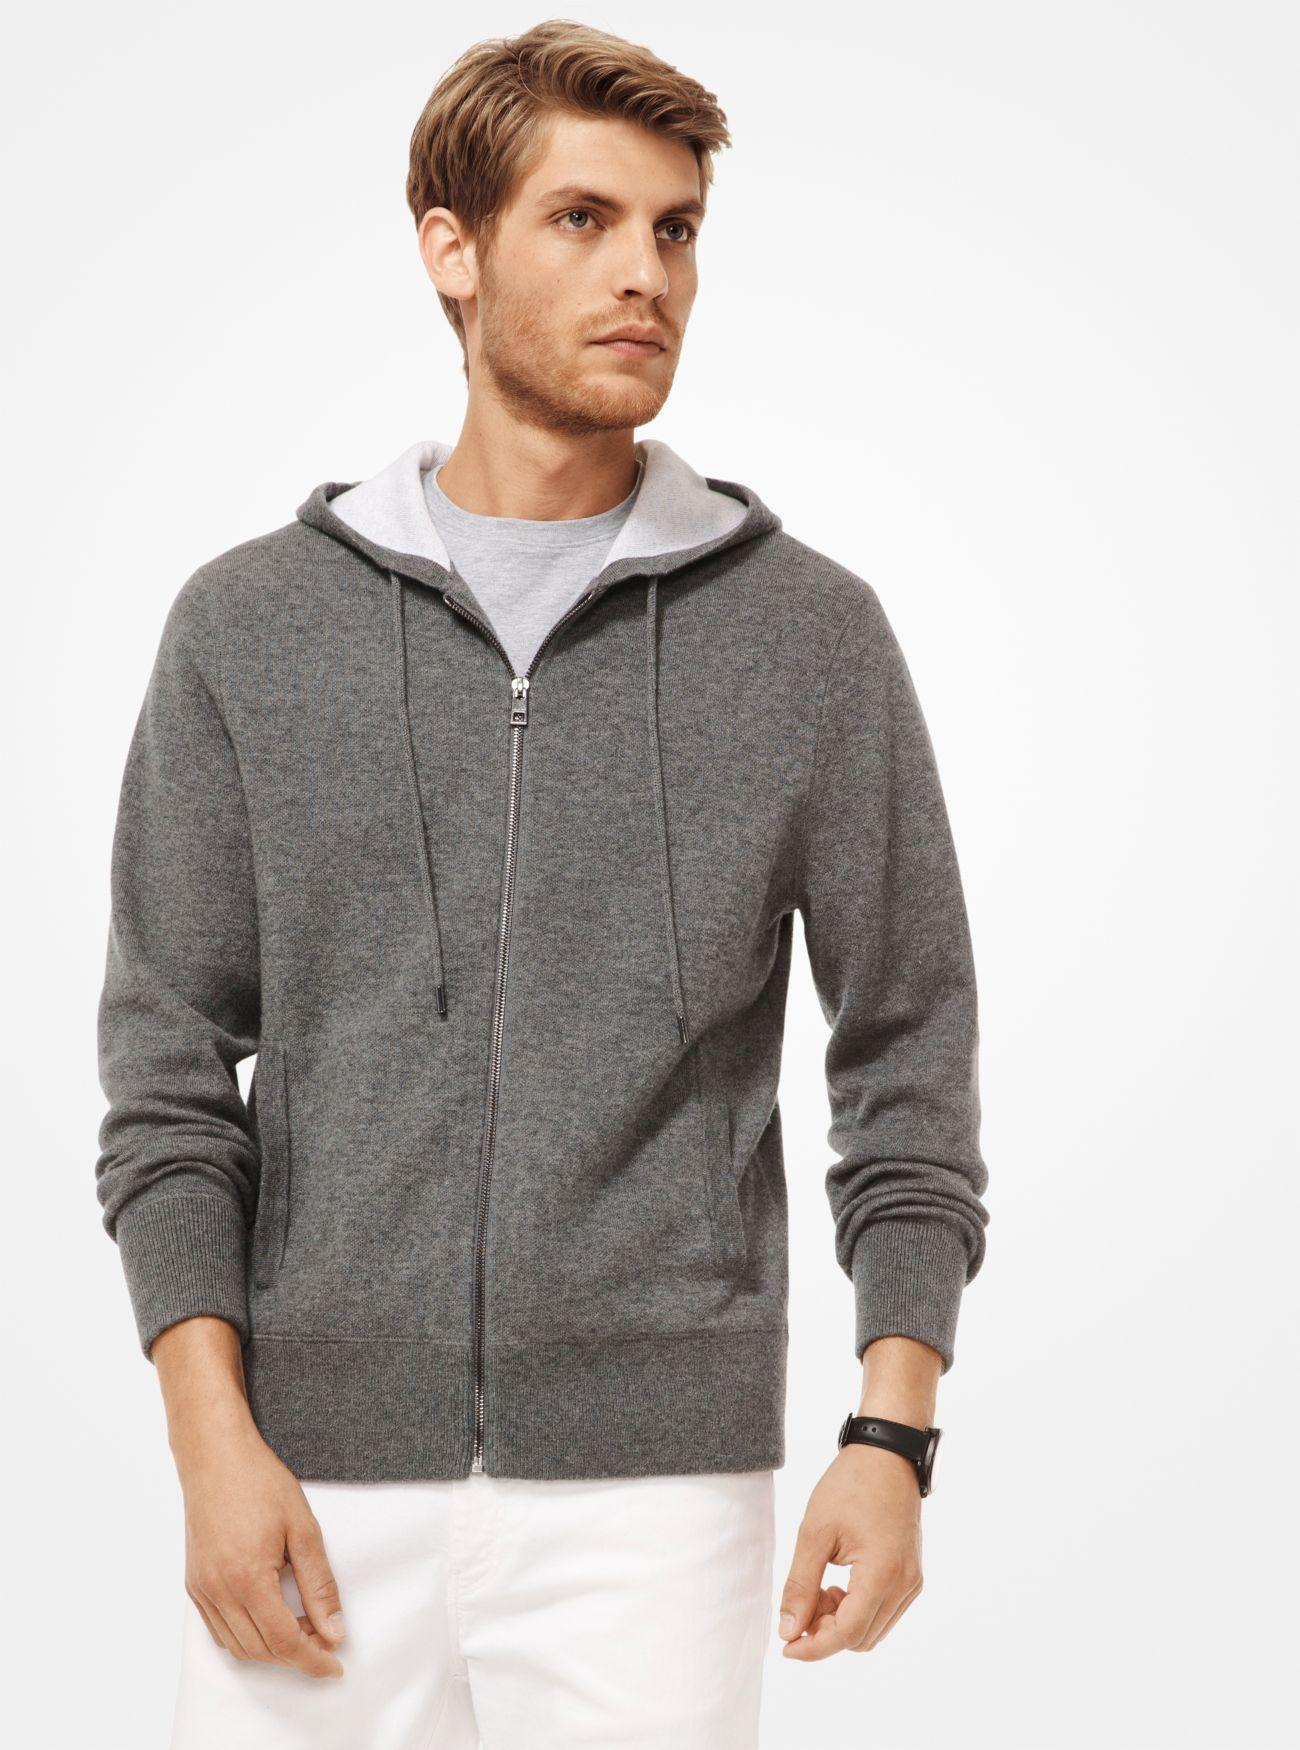 b5bae59d2a8fa1 Lyst - Michael Kors Cashmere-blend Zip-up Hoodie in Gray for Men